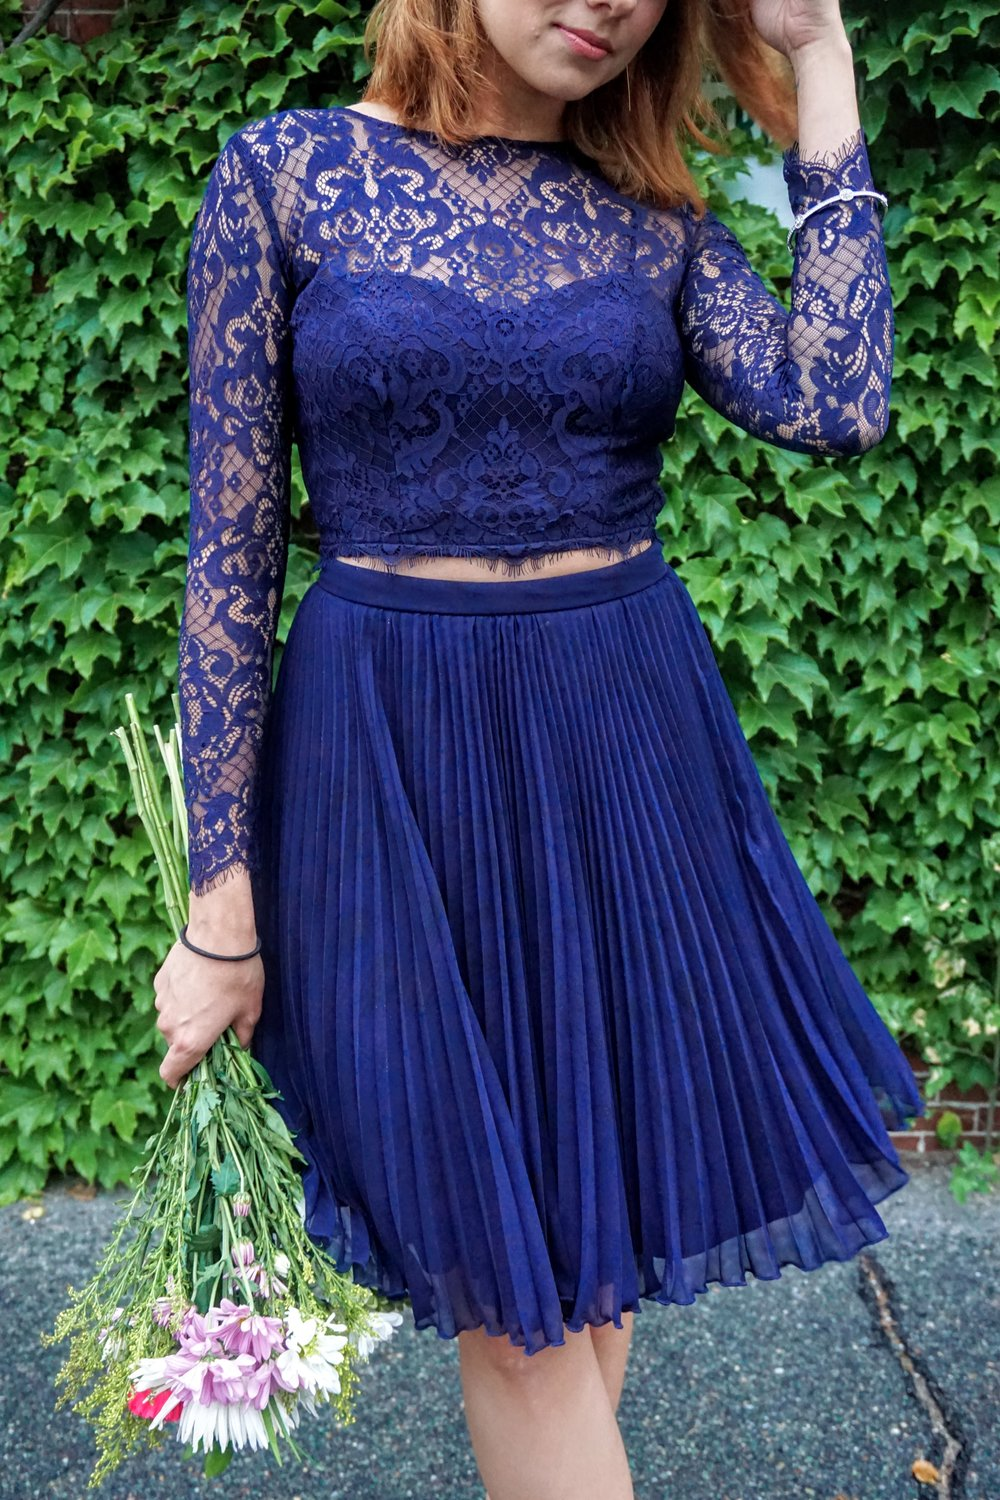 A close-up of an outfit: dark blue lace top and skirt.